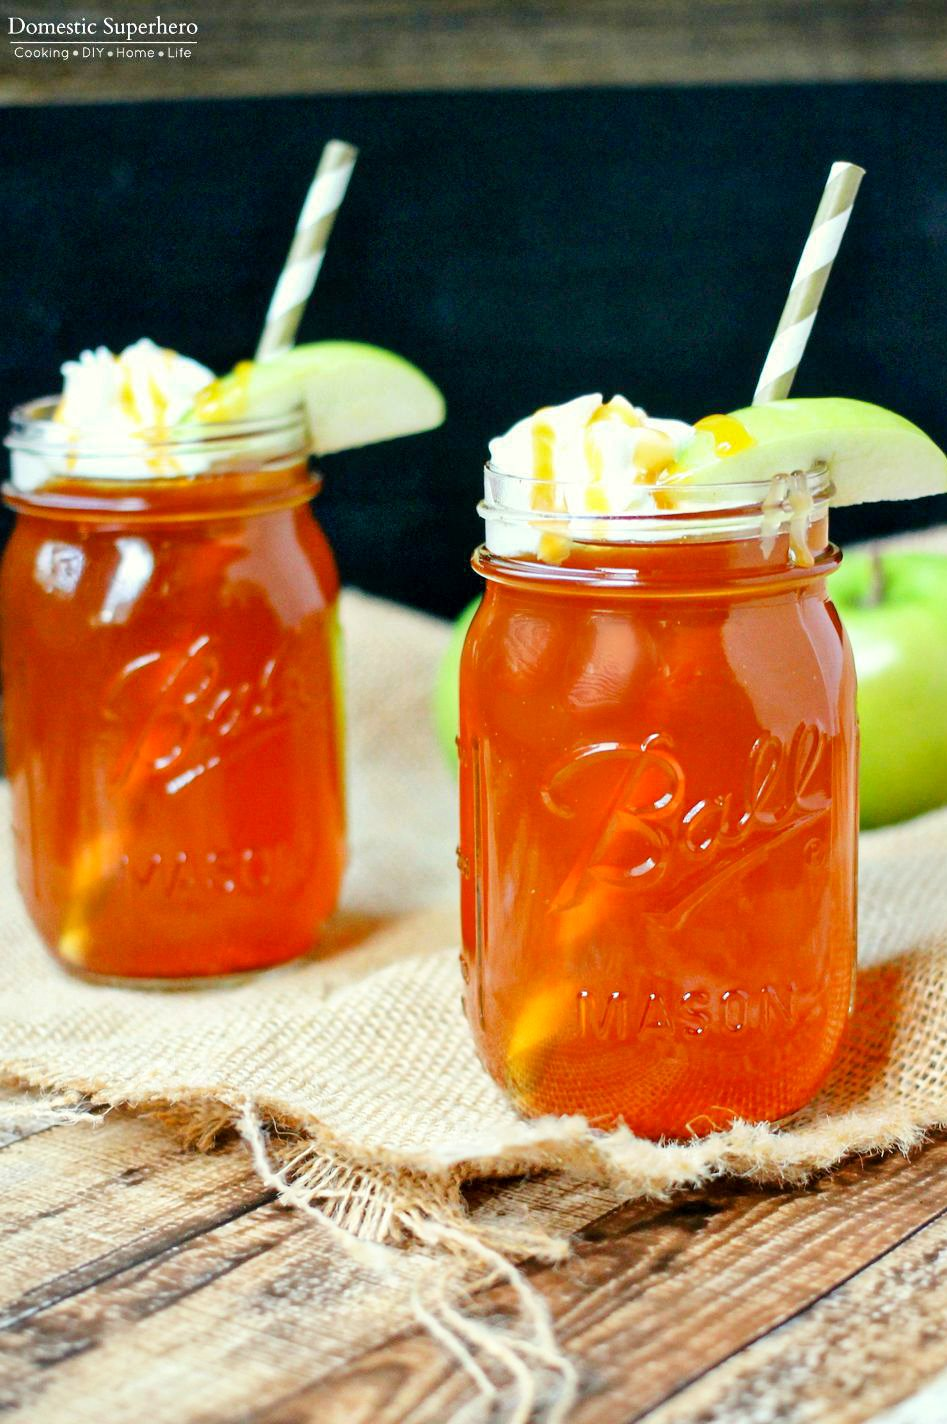 Set it and forget it! This Caramel Apple Cider made in the slow cooker has only 3 ingredients, will leave your house smelling amazing, and warms your soul.